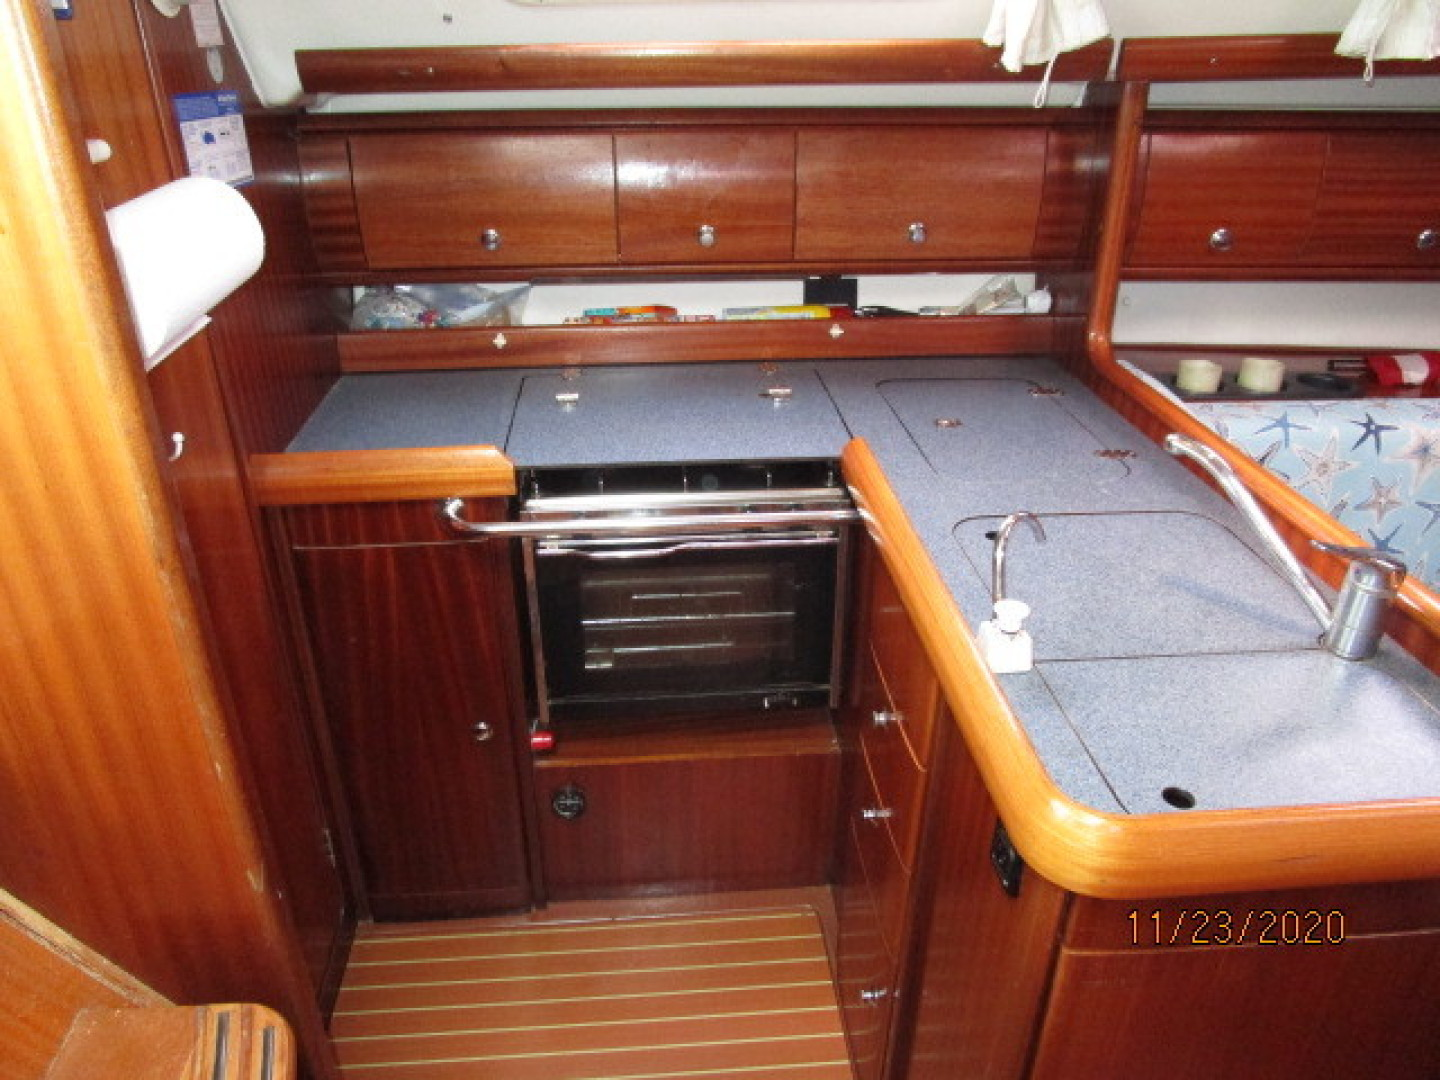 Bavaria-36 3 stateroom 2004-Aequanimity Southport-Connecticut-United States-1566137 | Thumbnail